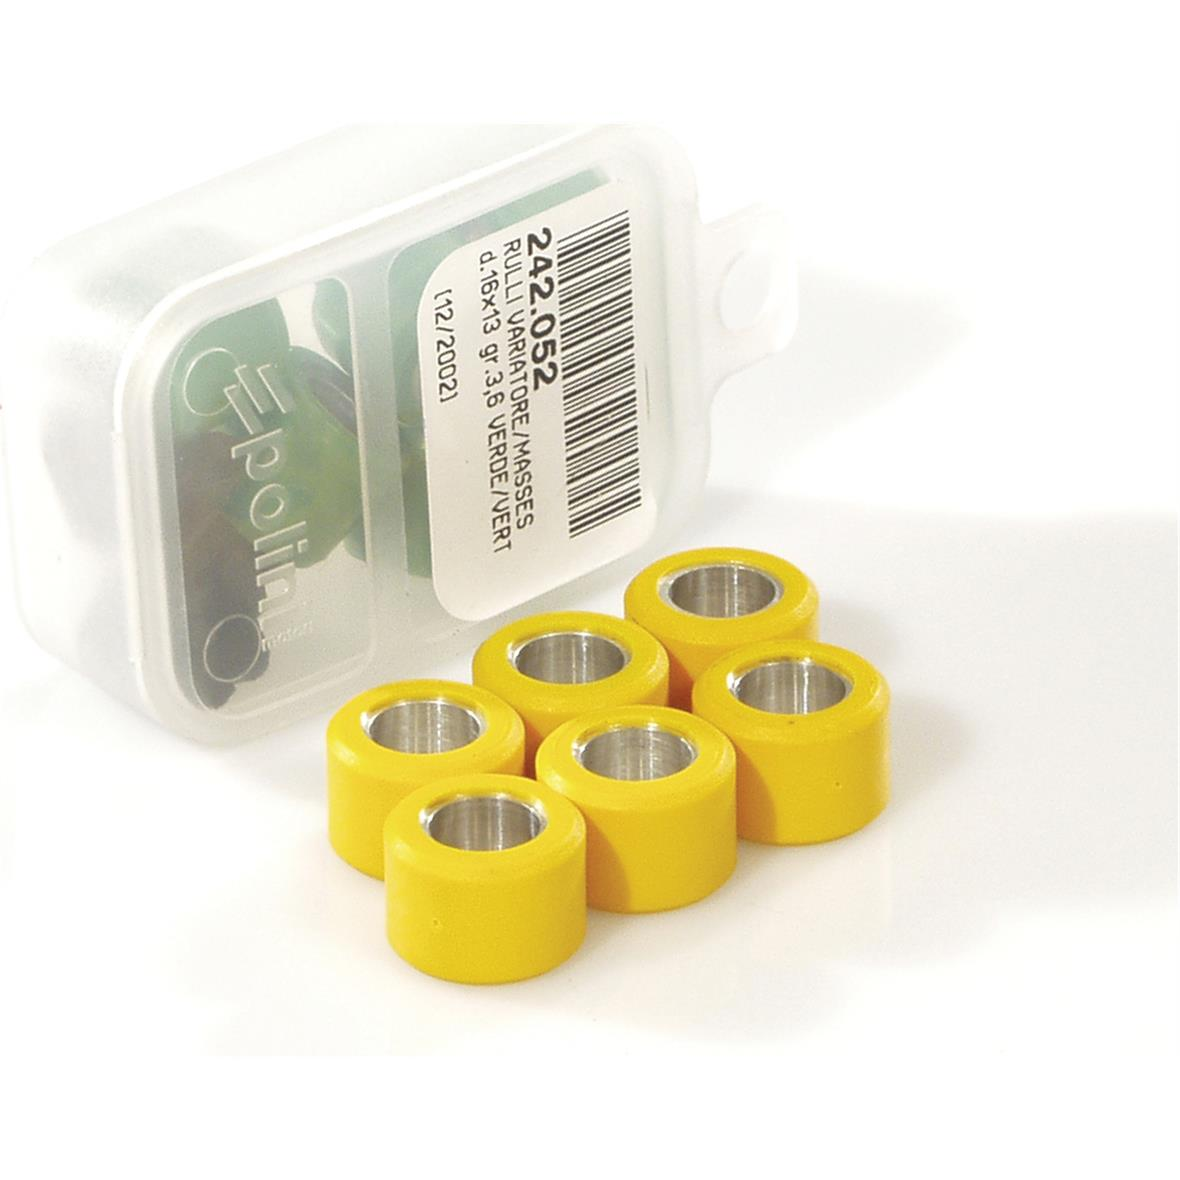 Product Image for 'Variator Rollers POLINI 15x12 mm 9,2gTitle'